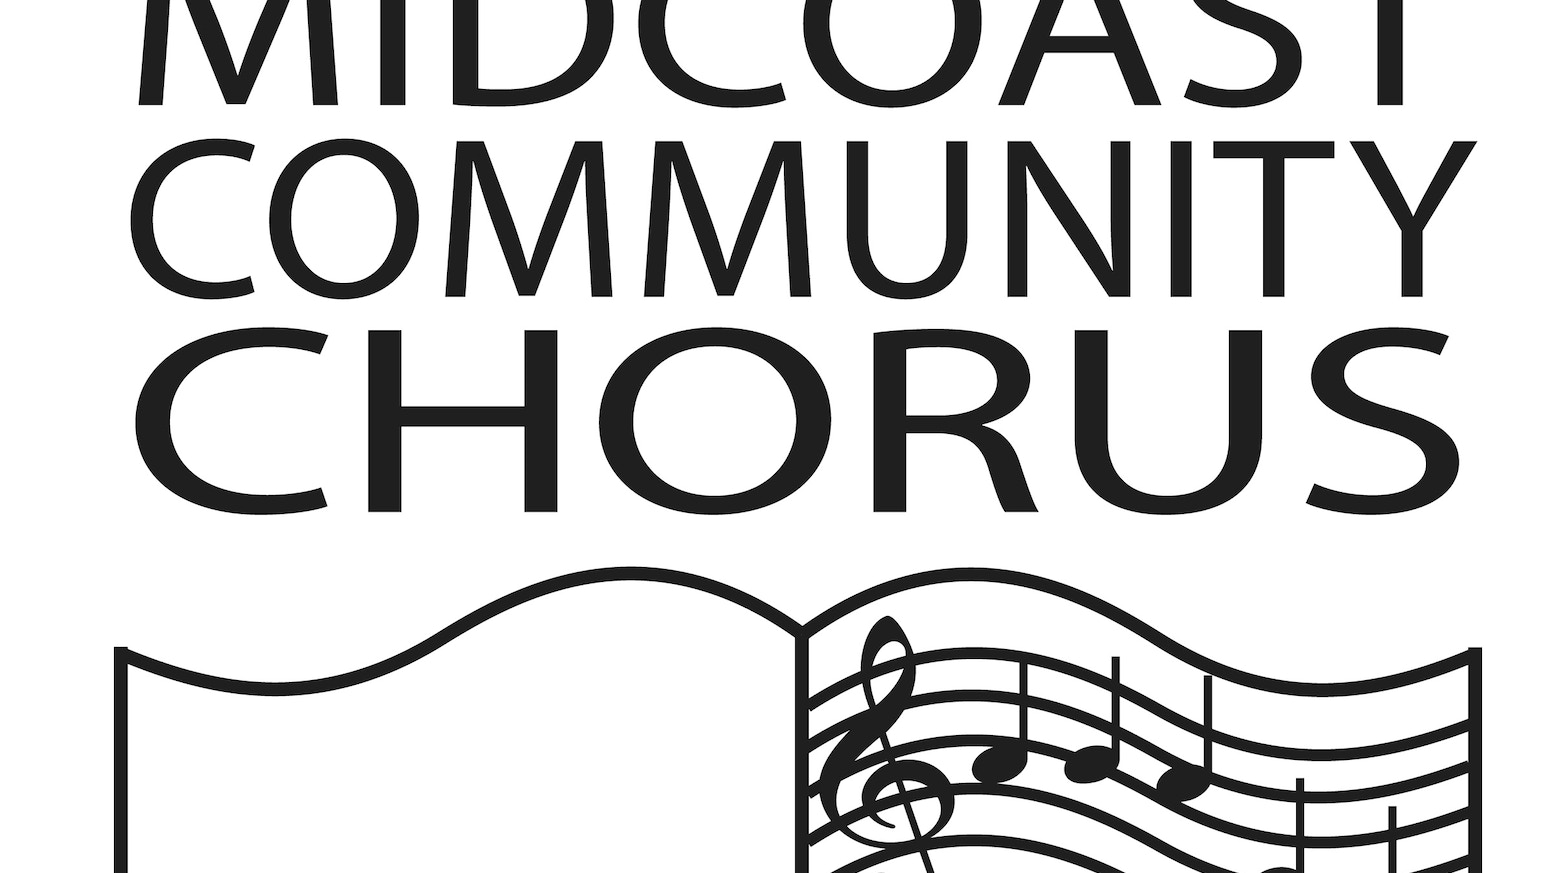 One Song at a Time by Midcoast Community Chorus » Let's Keep On